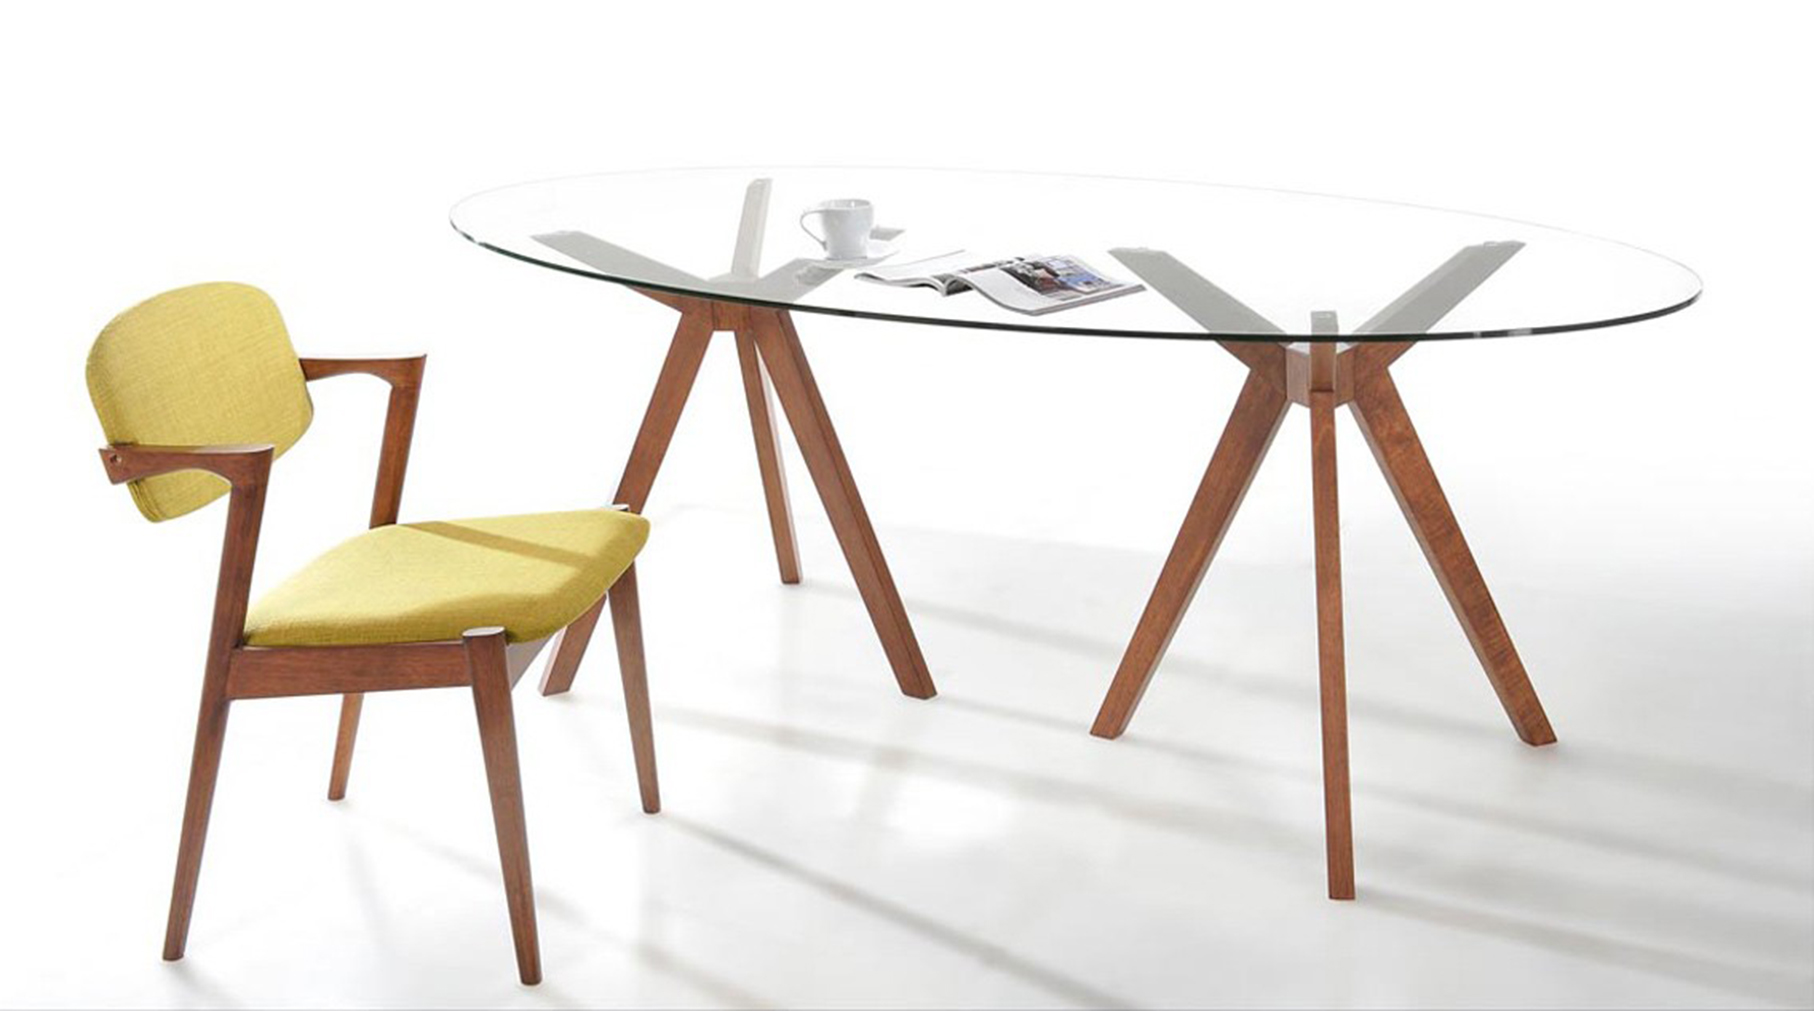 The Baxter Mid Century Over Dining Table is available At Advancedinteriordesigns.com